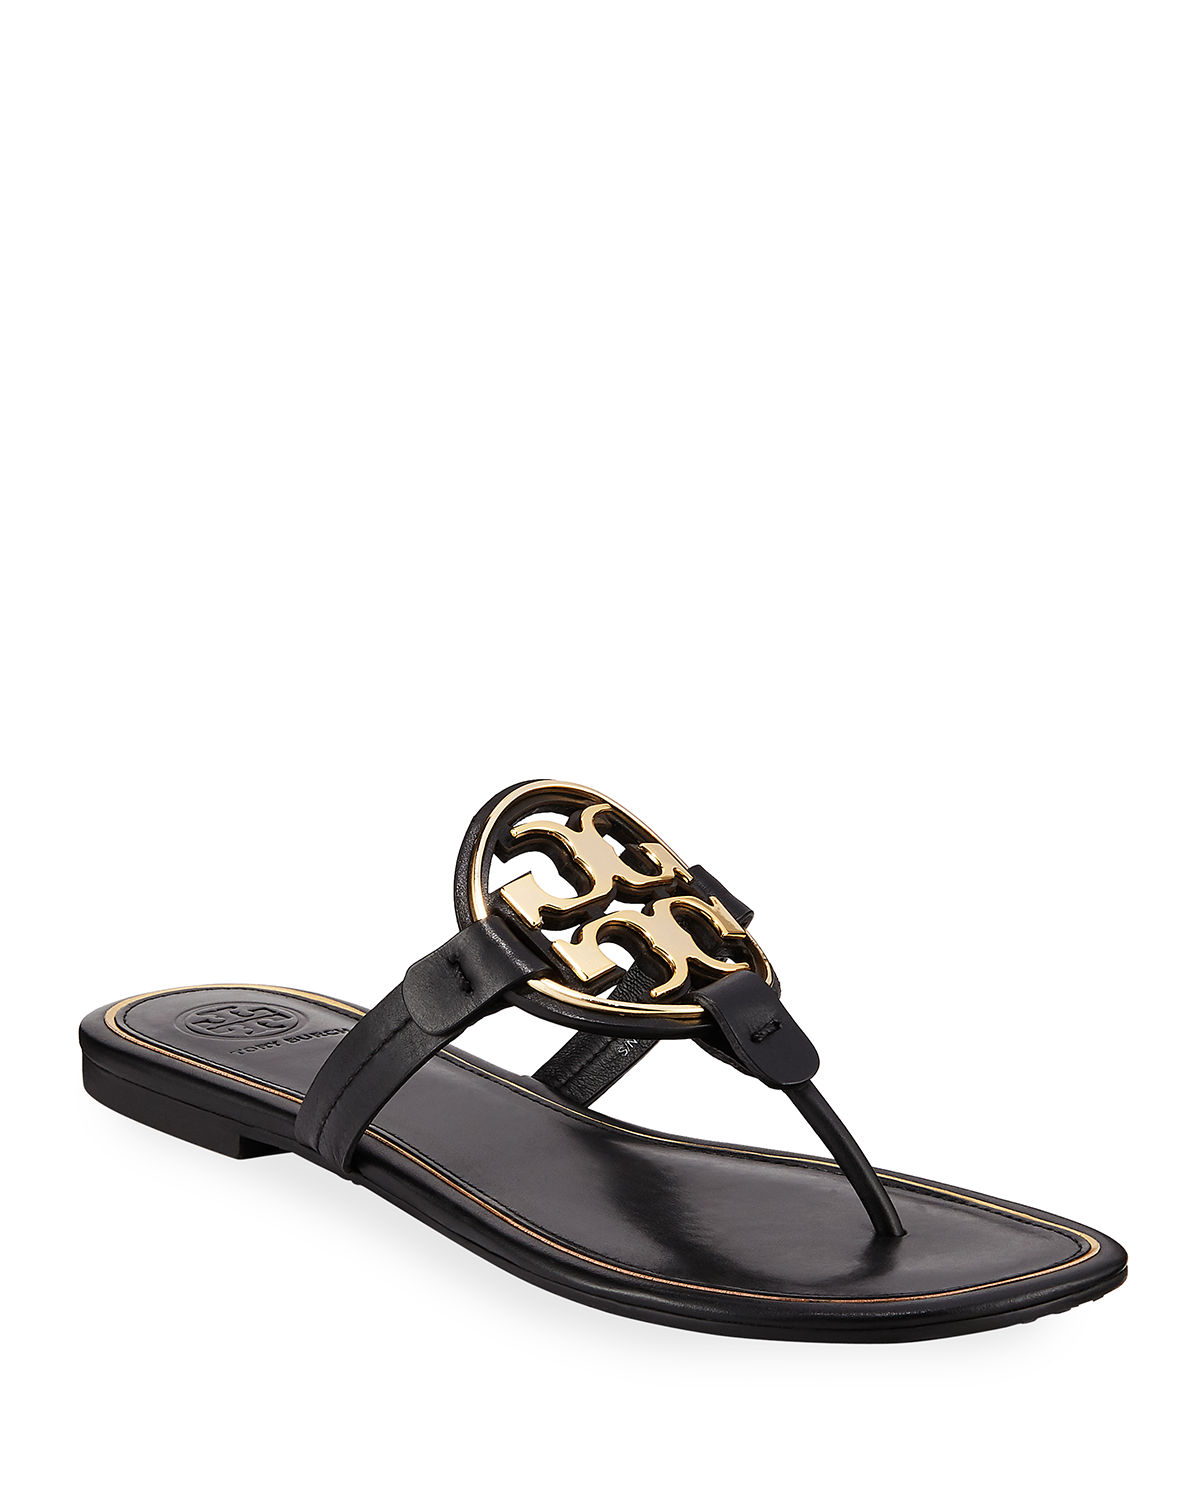 e48b89df55a Tory Burch Miller Flat Metal Logo Slide Sandals